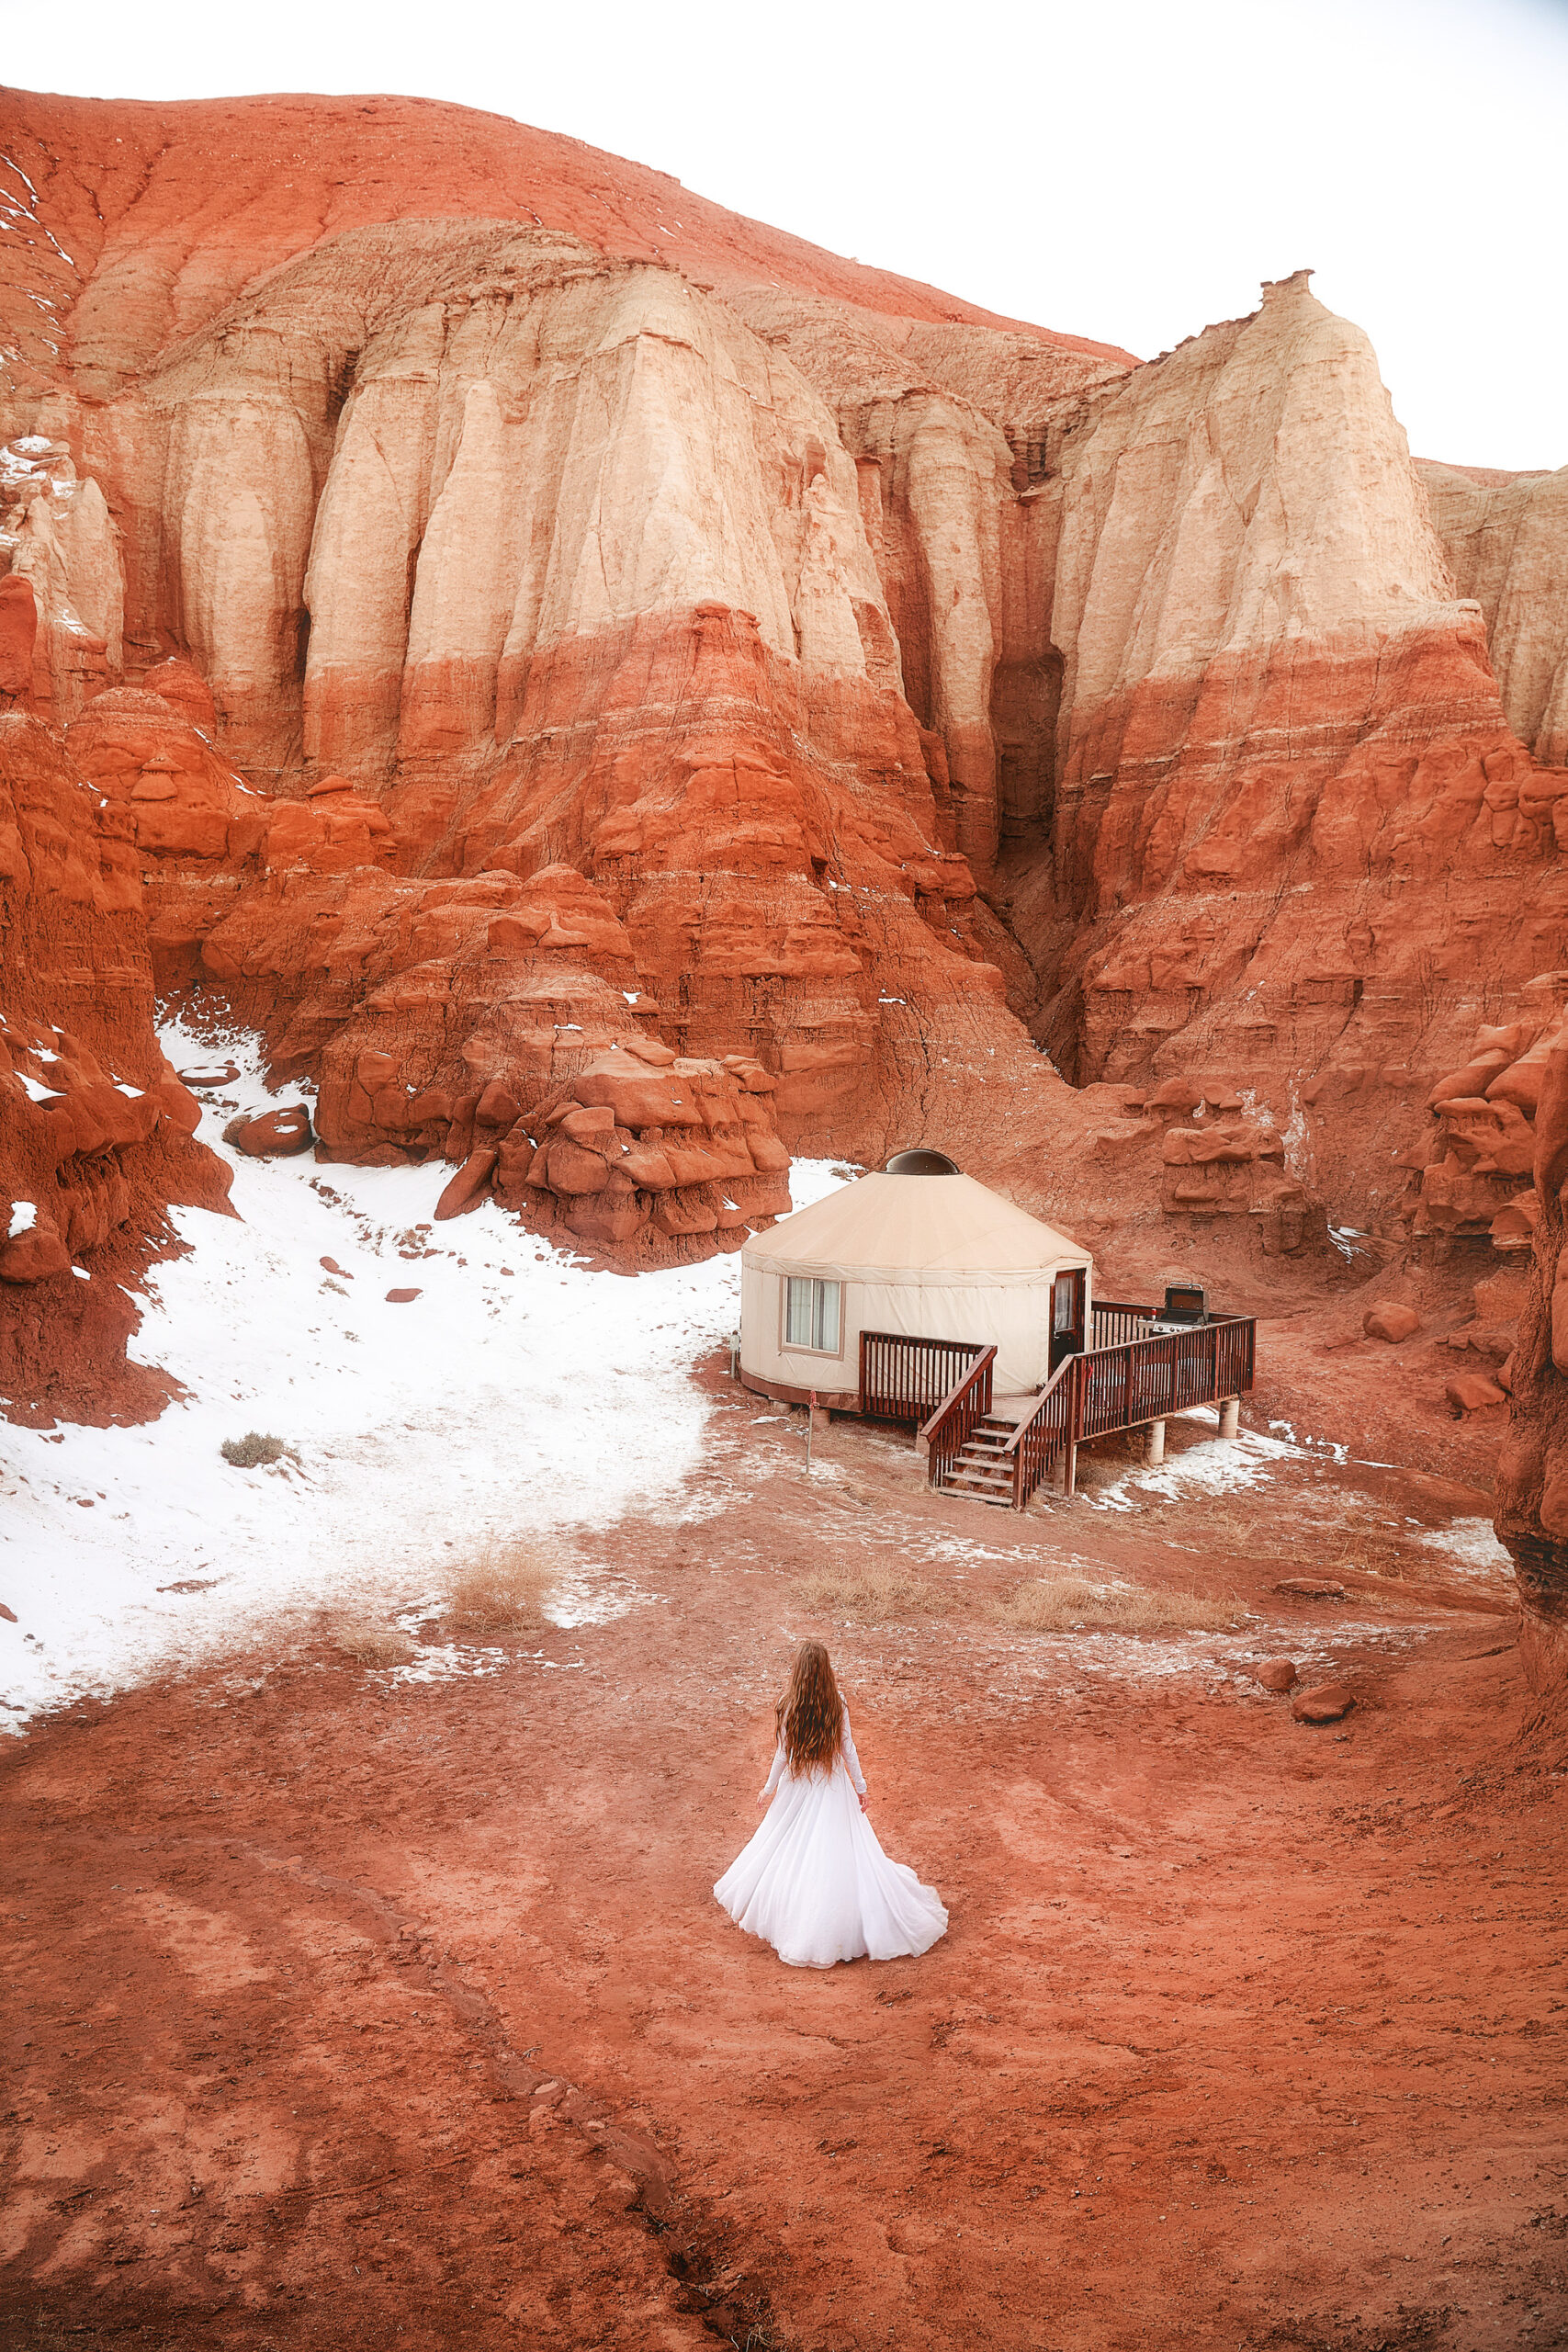 Looking down into a small valley where a woman is standing in a white dress with long hair. She is standing near a yurt. Behind the yurt you can see snow on the ground. A common view during a winter Southwest road trip